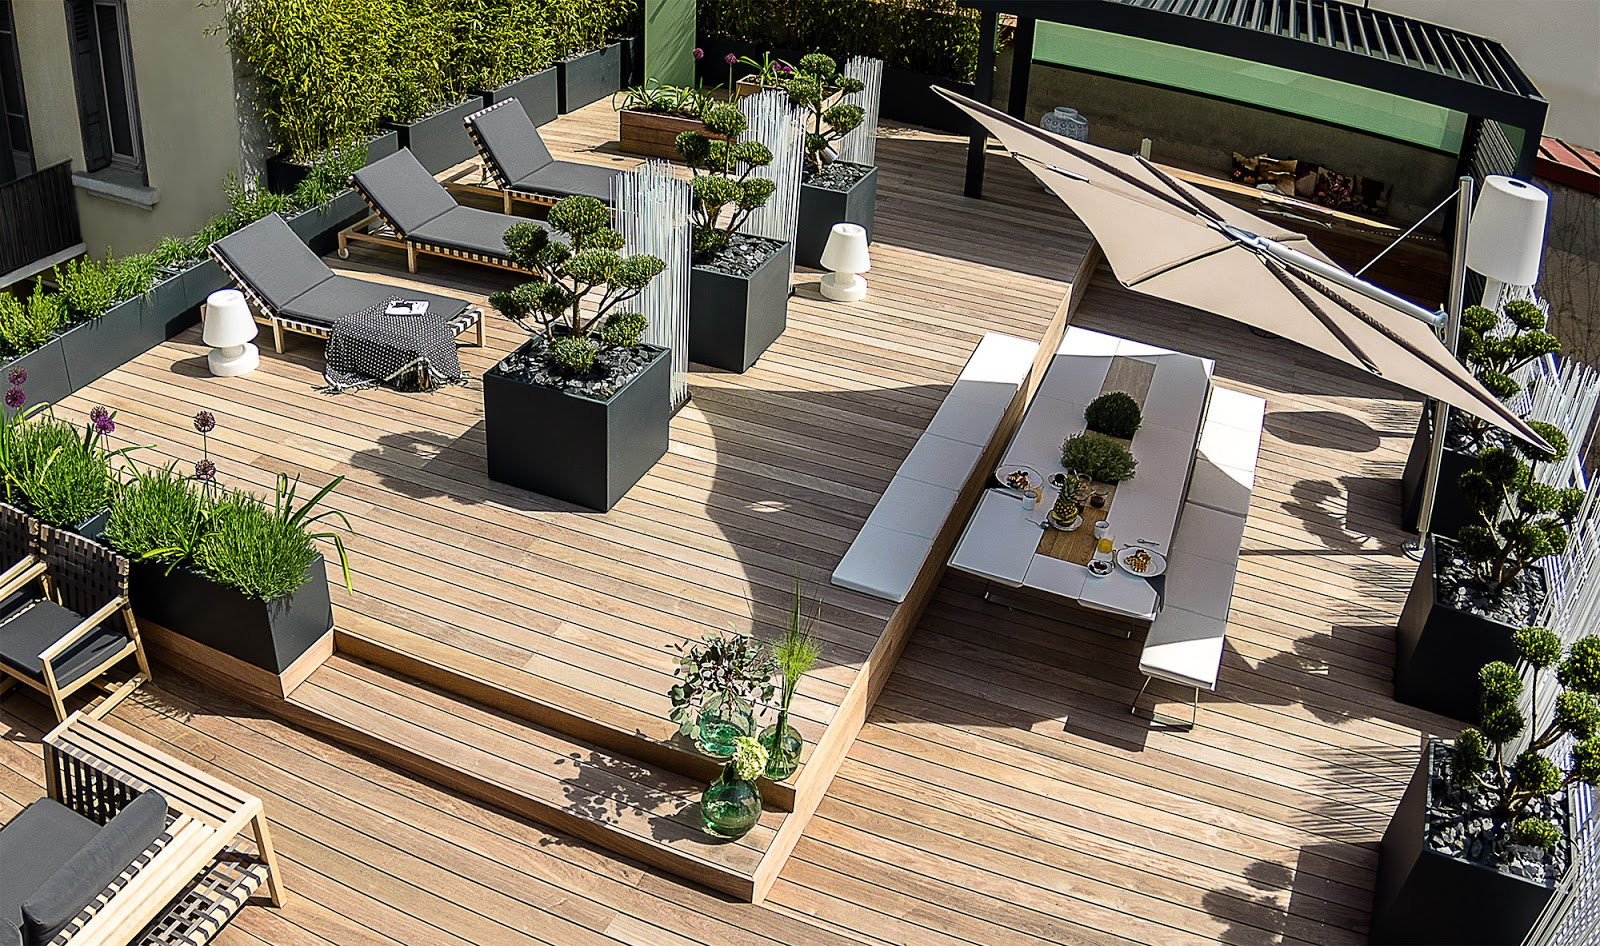 image 39 in large planters for bamboo and shrubs on rooftop terrace. Black Bedroom Furniture Sets. Home Design Ideas